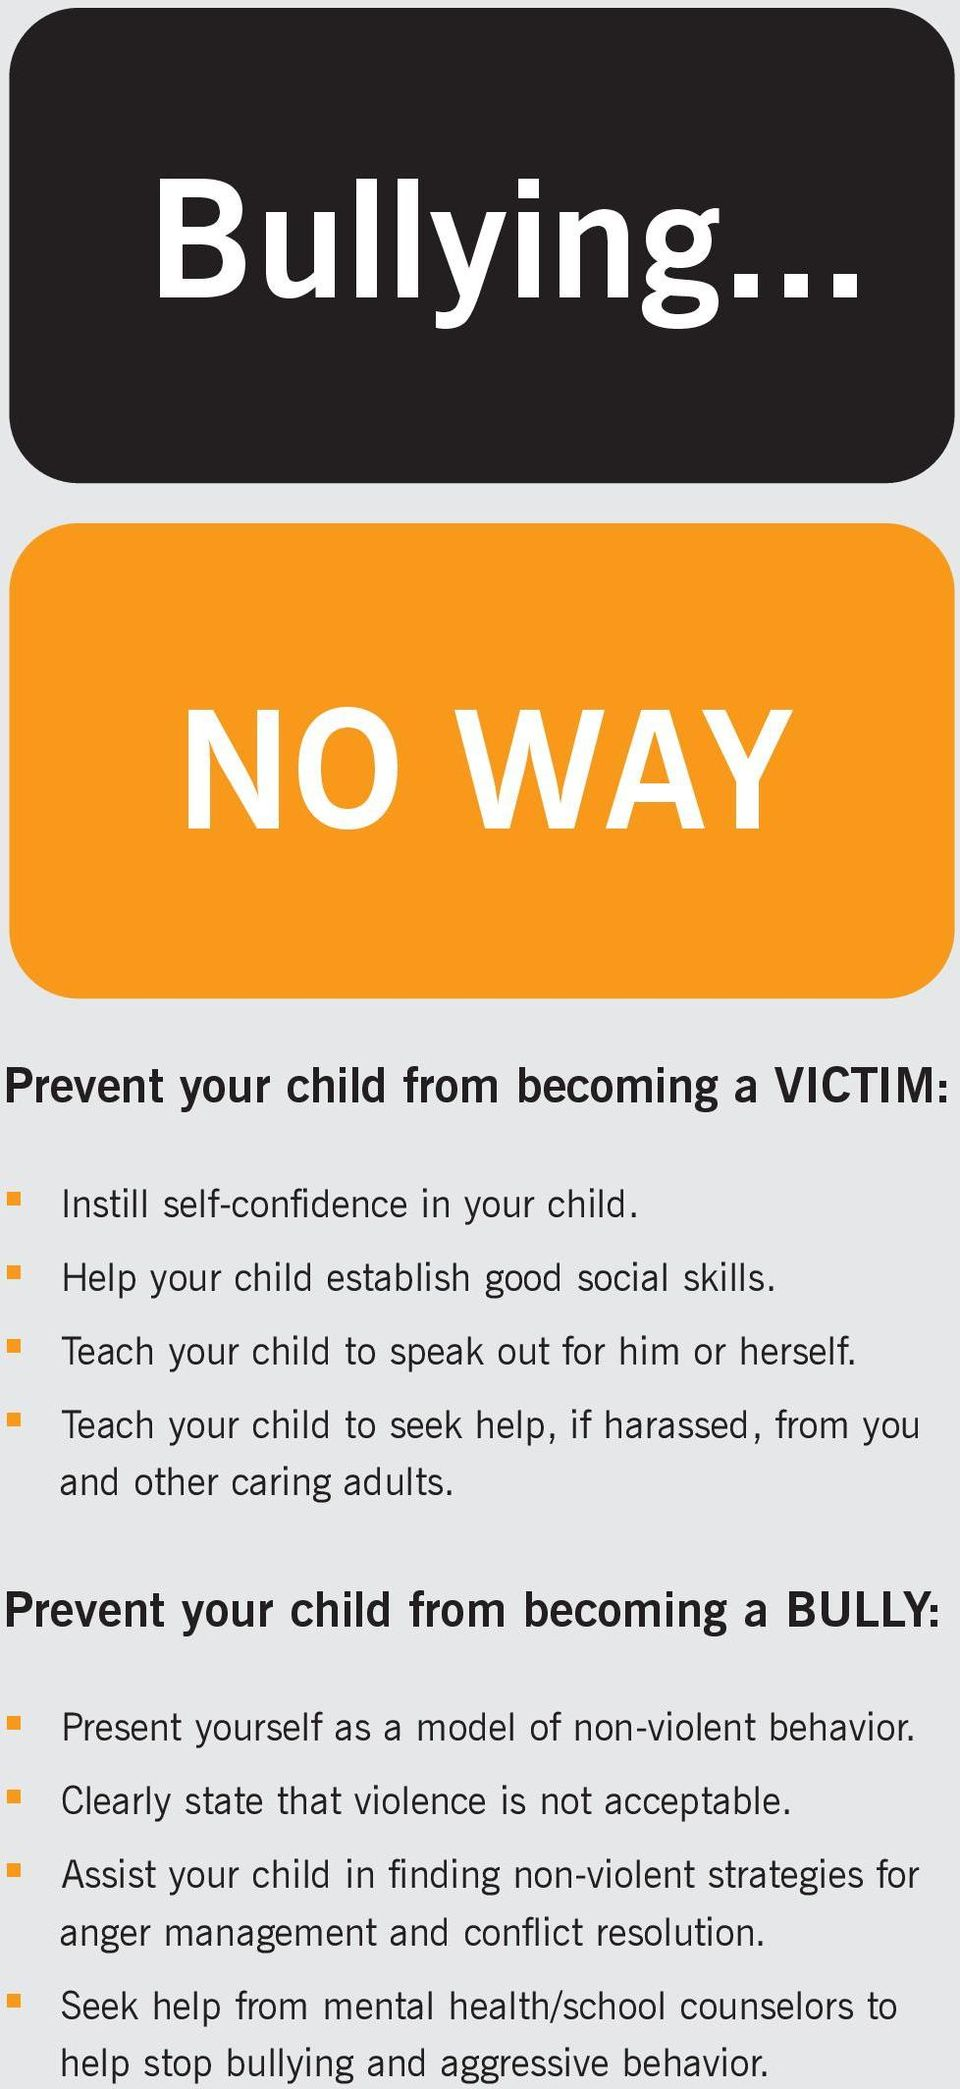 Prevent your child from becoming a BULLY: Present yourself as a model of non-violent behavior. Clearly state that violence is not acceptable.